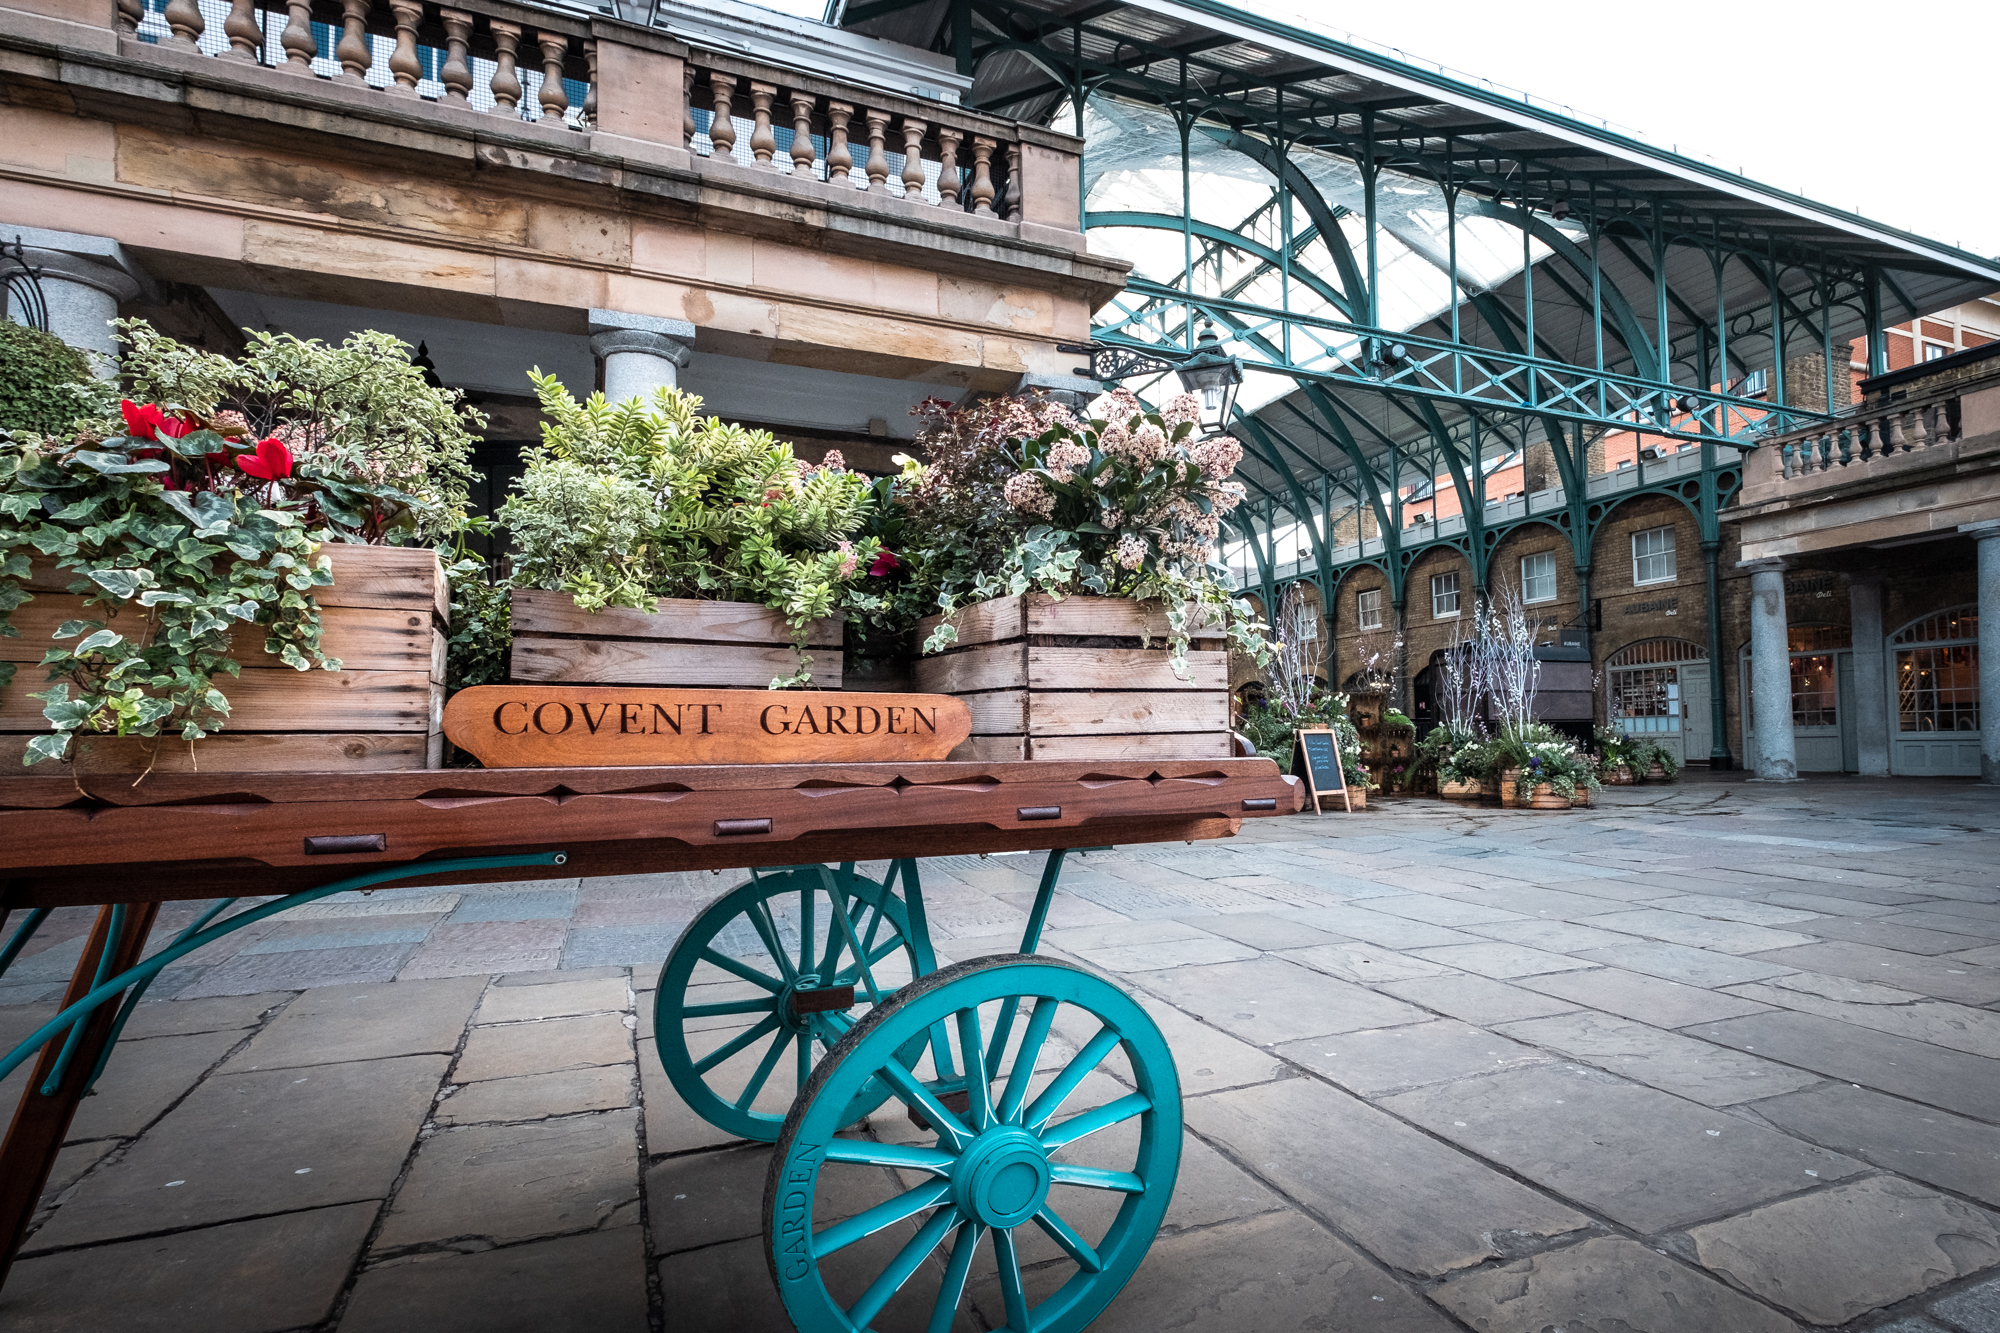 A photo of The Market Building, Covent Garden, London taken by Trevor Sherwin